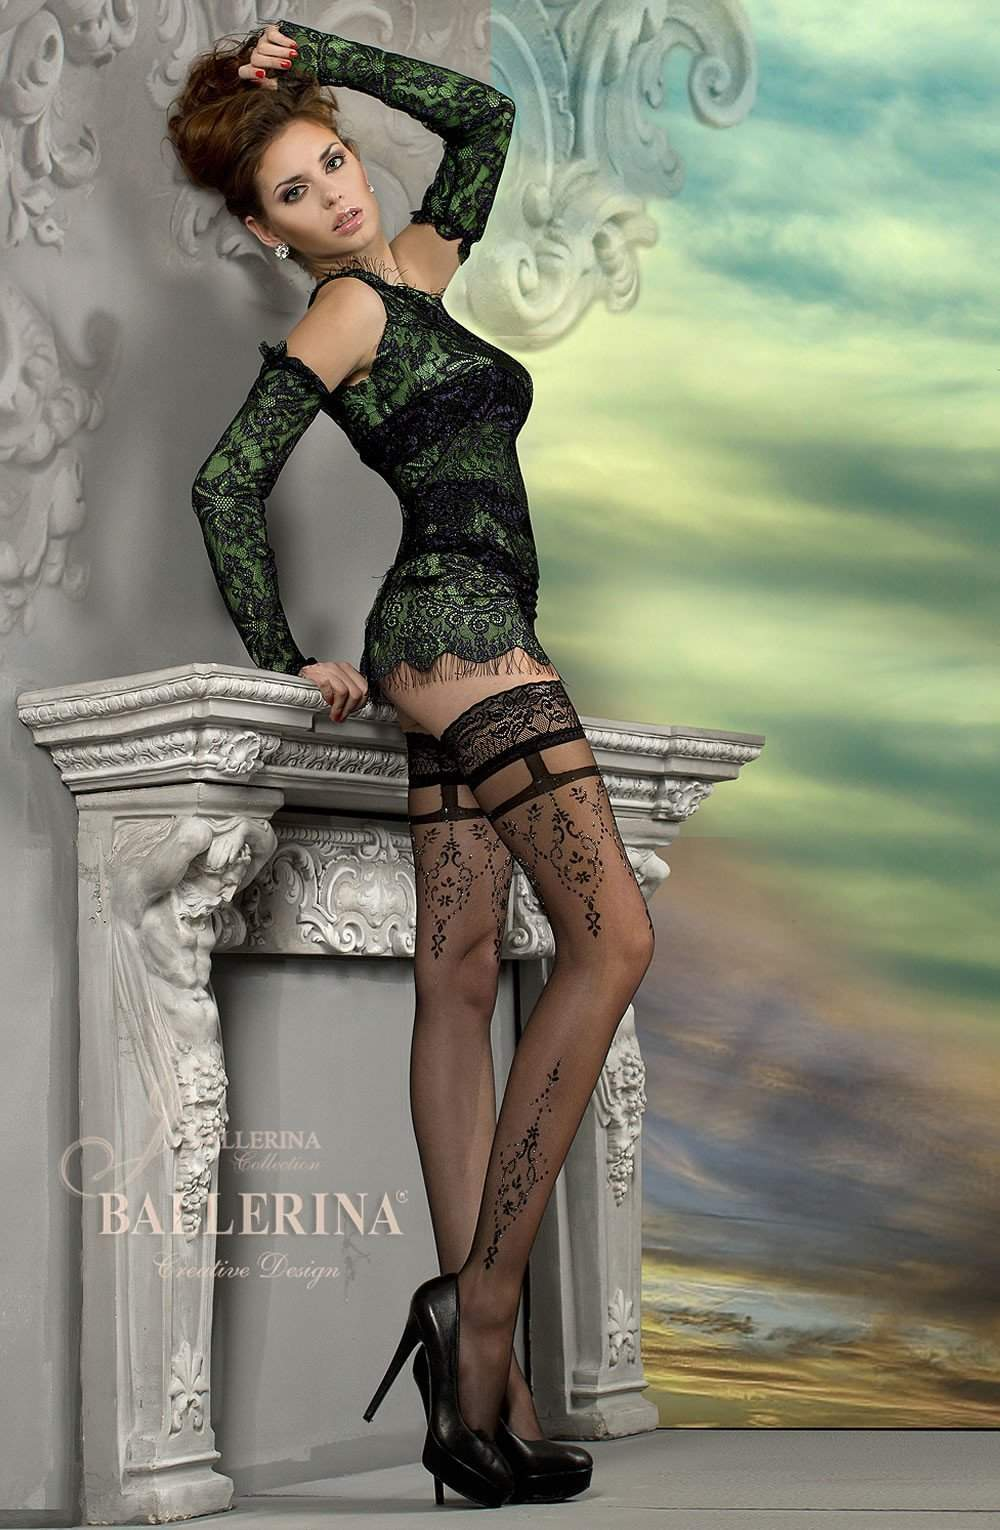 212 Hold Ups in Black/Metallic Thread by Ballerina - Ballerina - Katys Boutique Lingerie USA